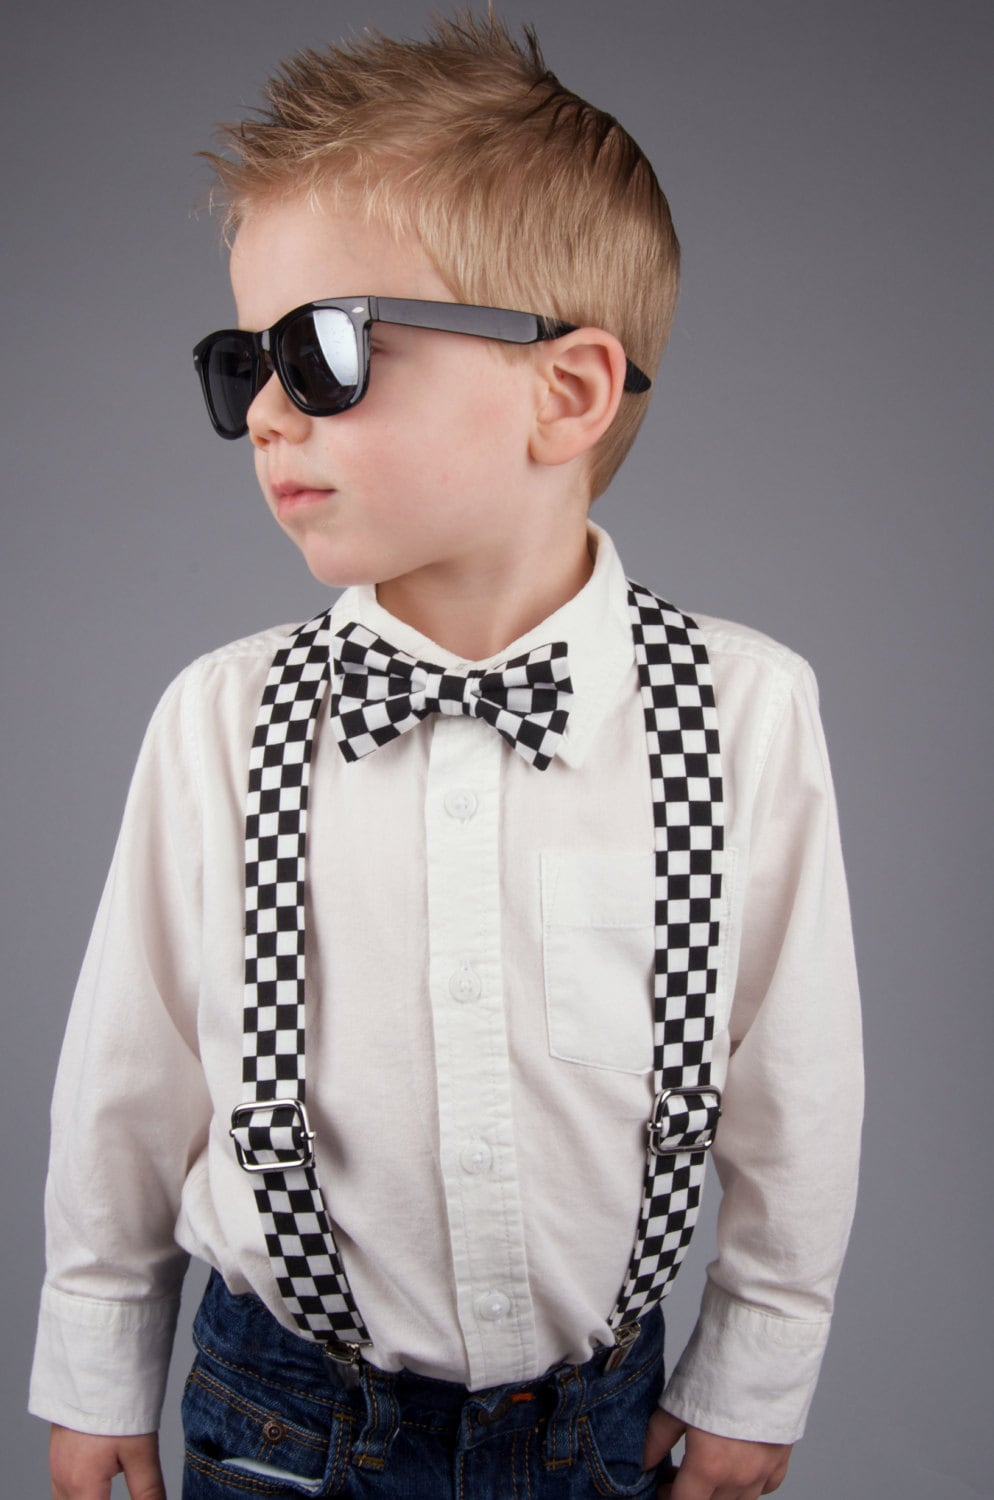 Checkered Bow Tie Amp Suspenders Set Checkered Bow Tie